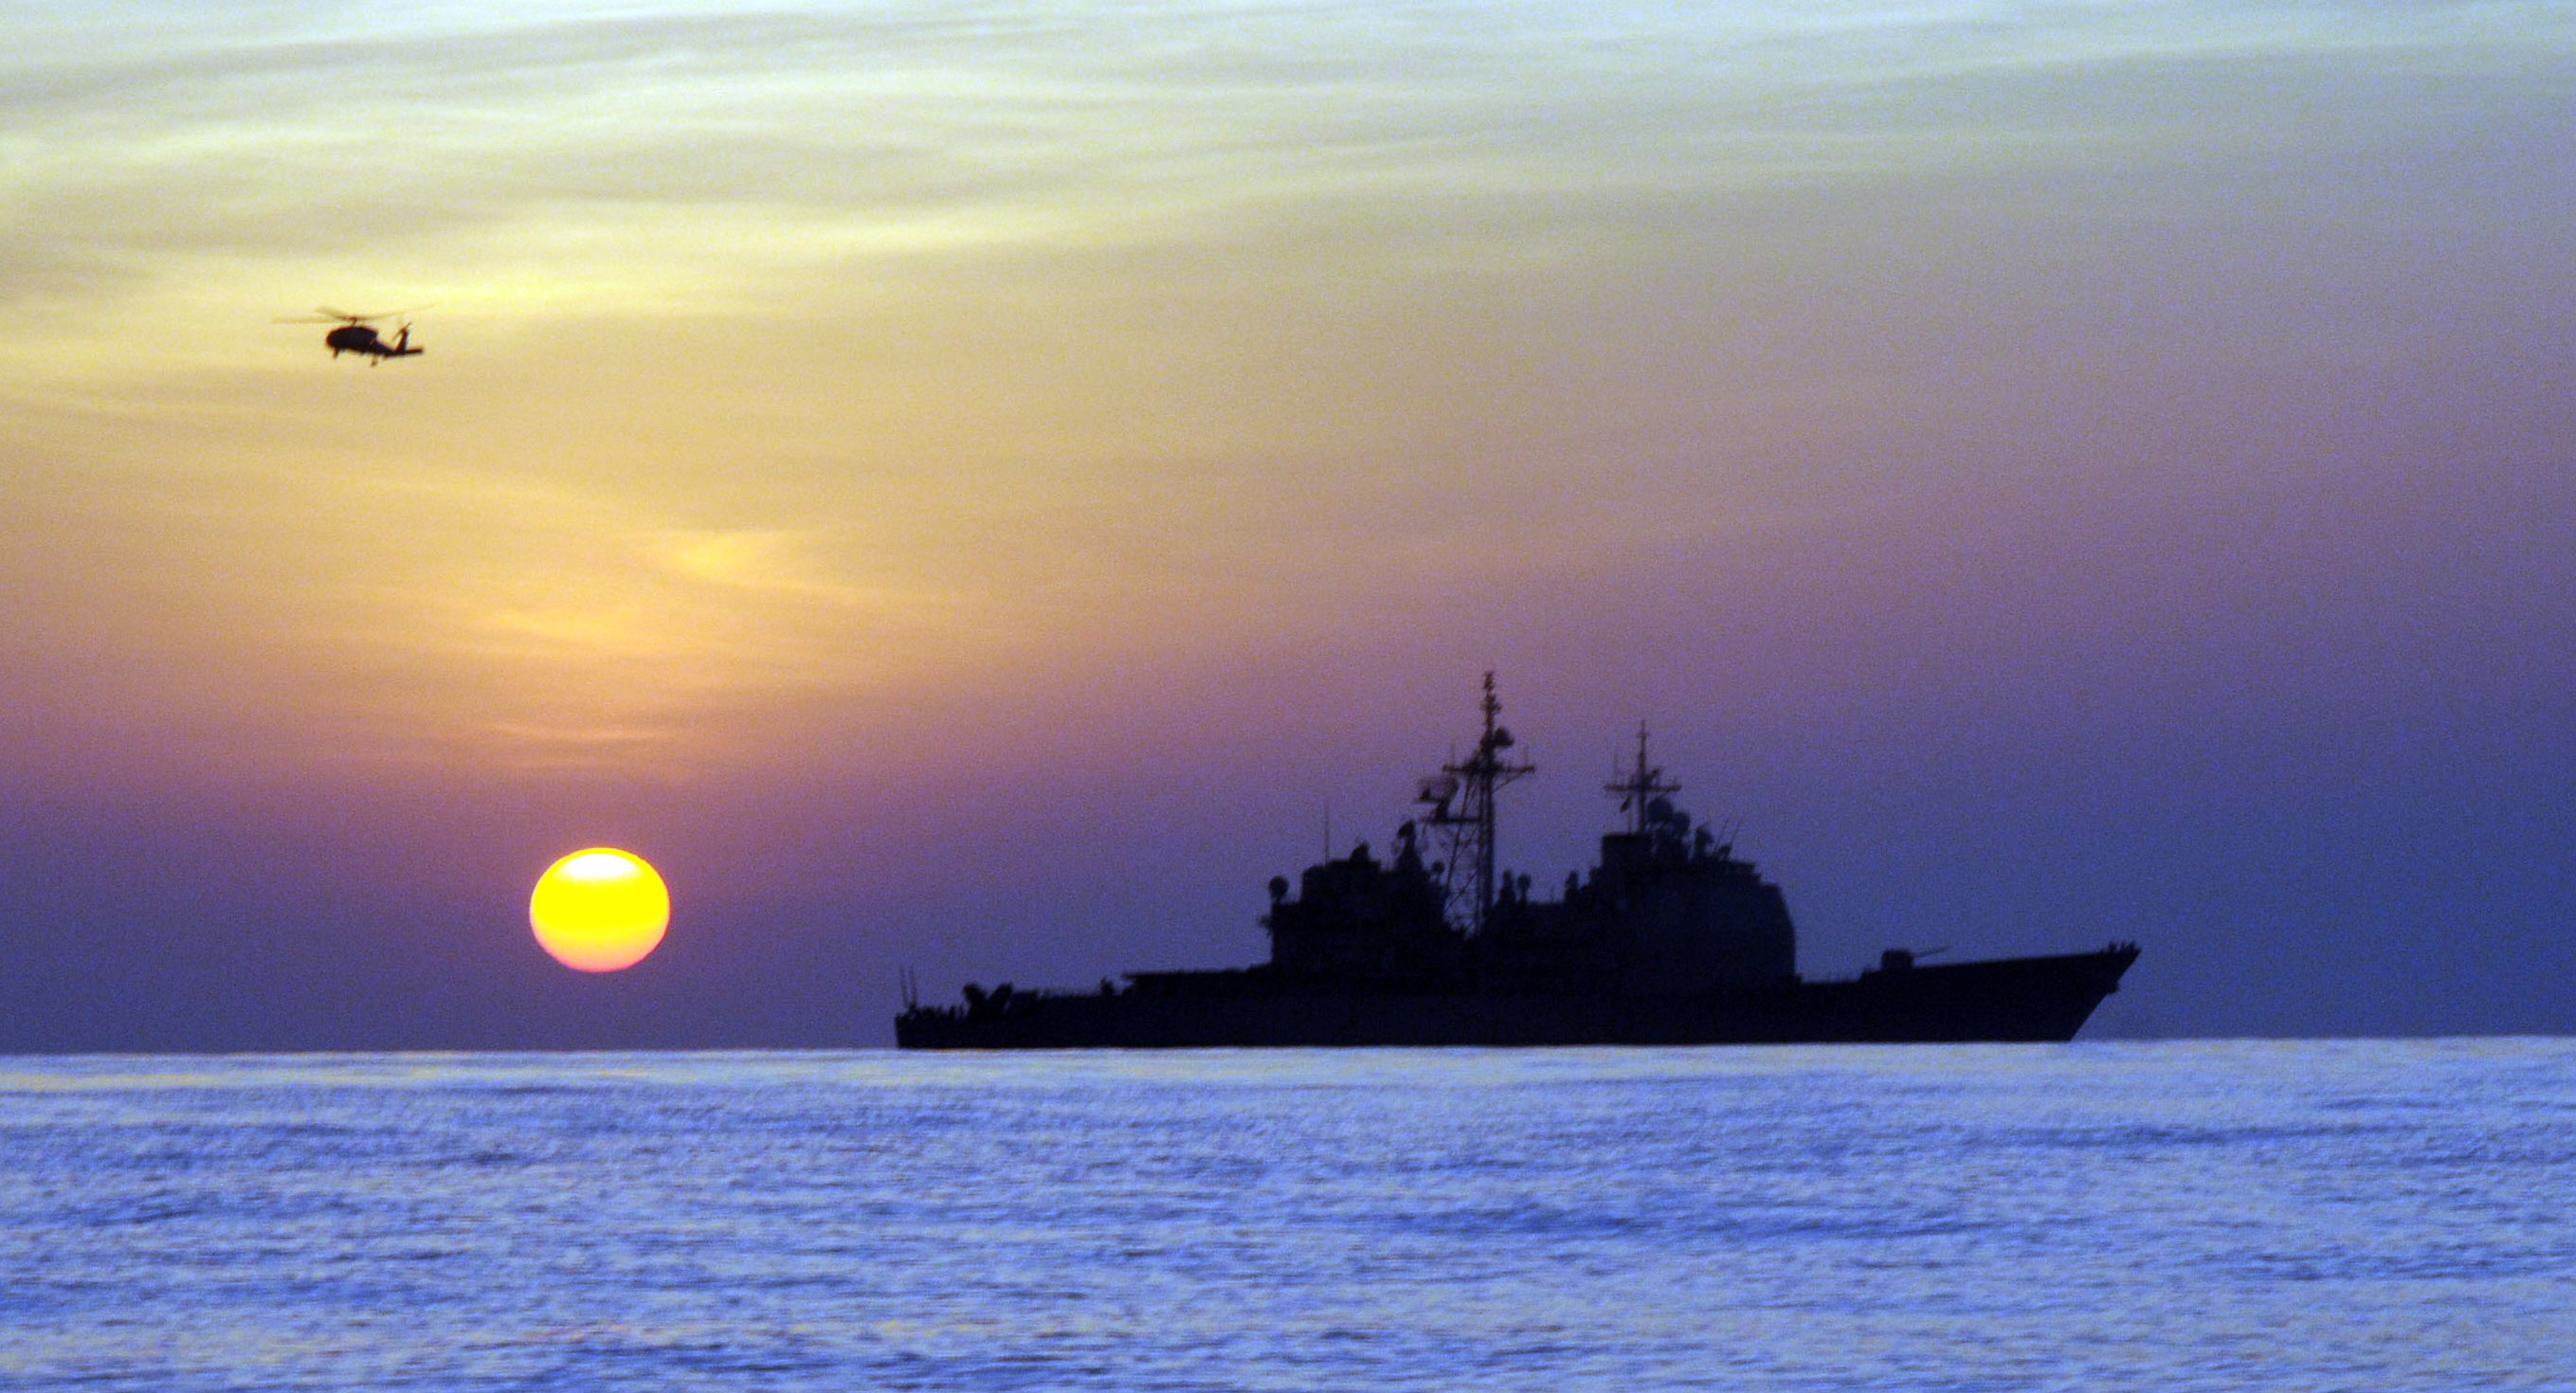 Showdown In The Gulf Of Aden: Iranian Warships Encroach On USS Mason After Houthi Attacks Featured